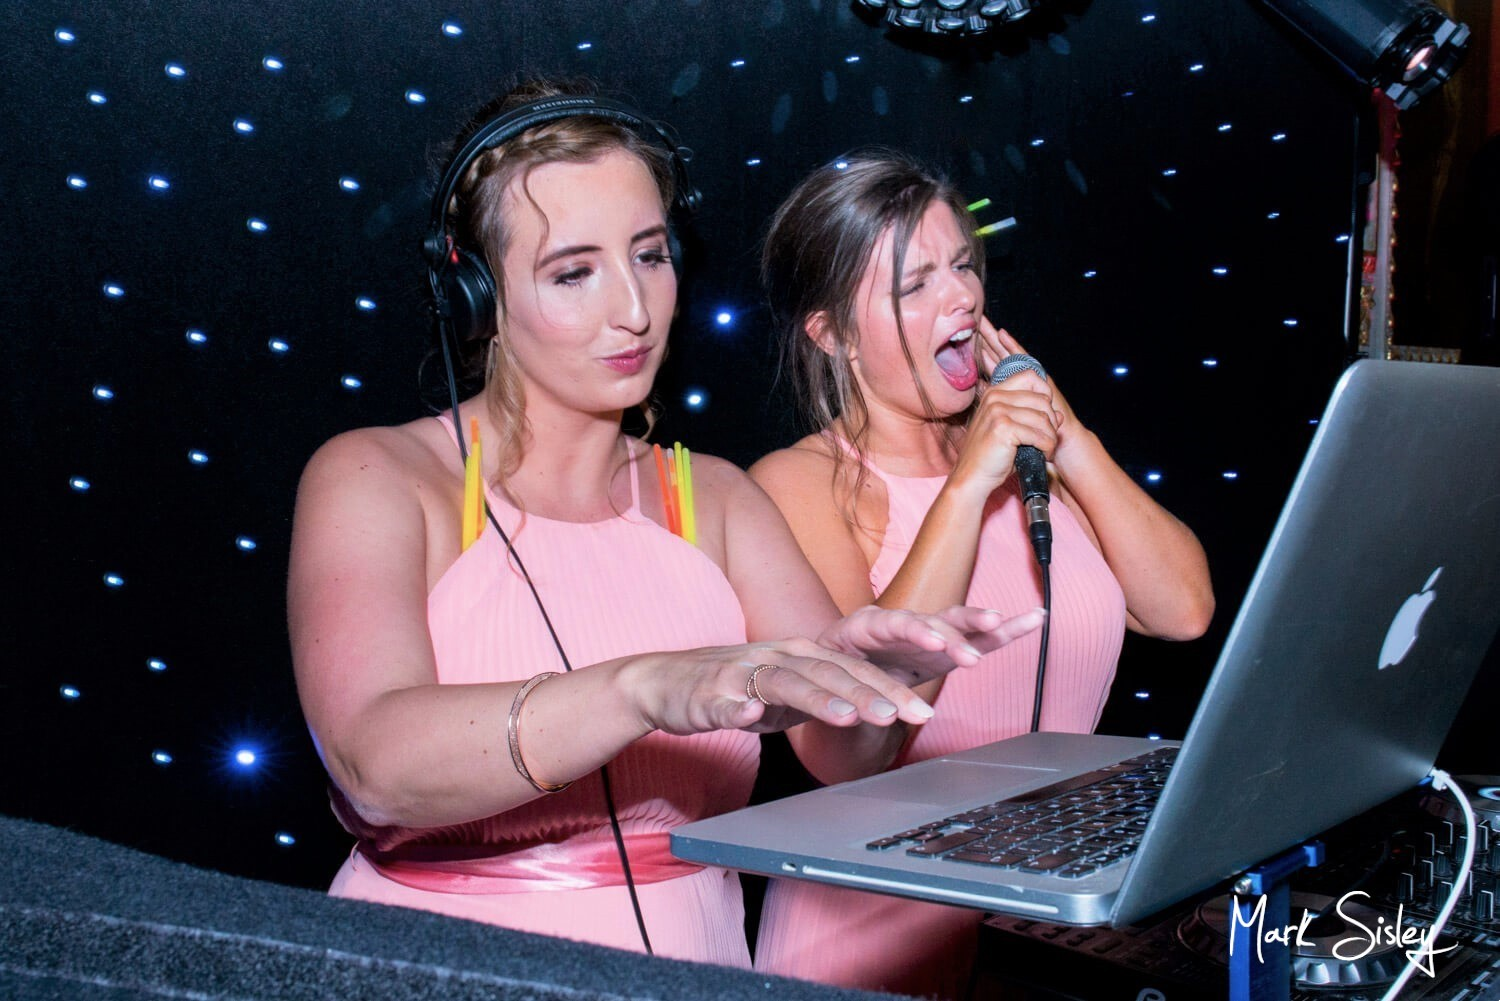 Hartwell House wedding pictures - the bridesmaids sep in for the DJ